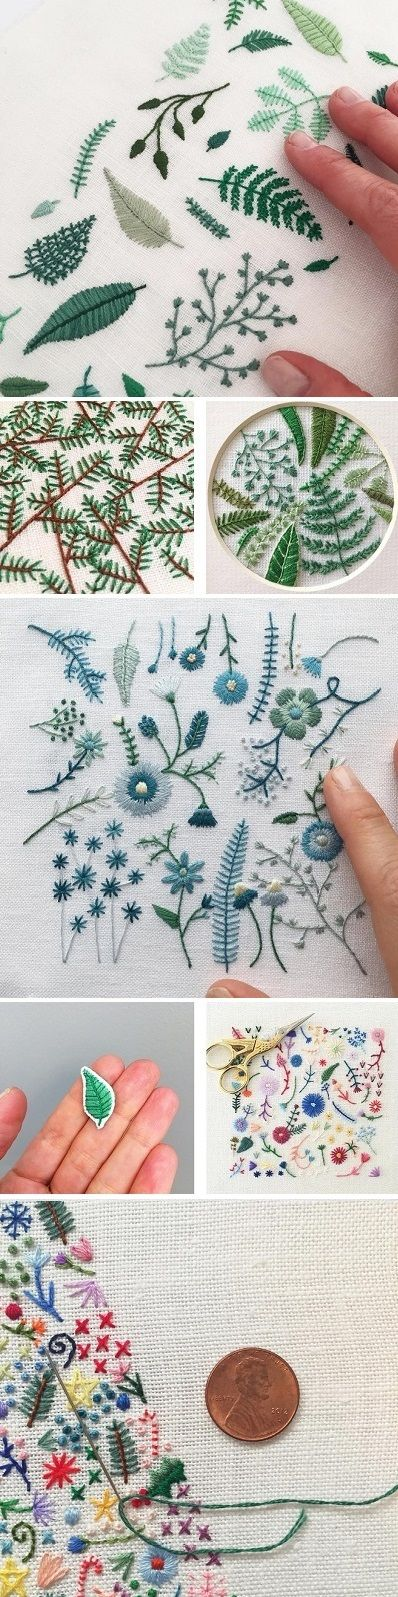 Pillow Hand Embroidery Designs: Best 25+ Pillow embroidery ideas on Pinterest   Embroidery    ,